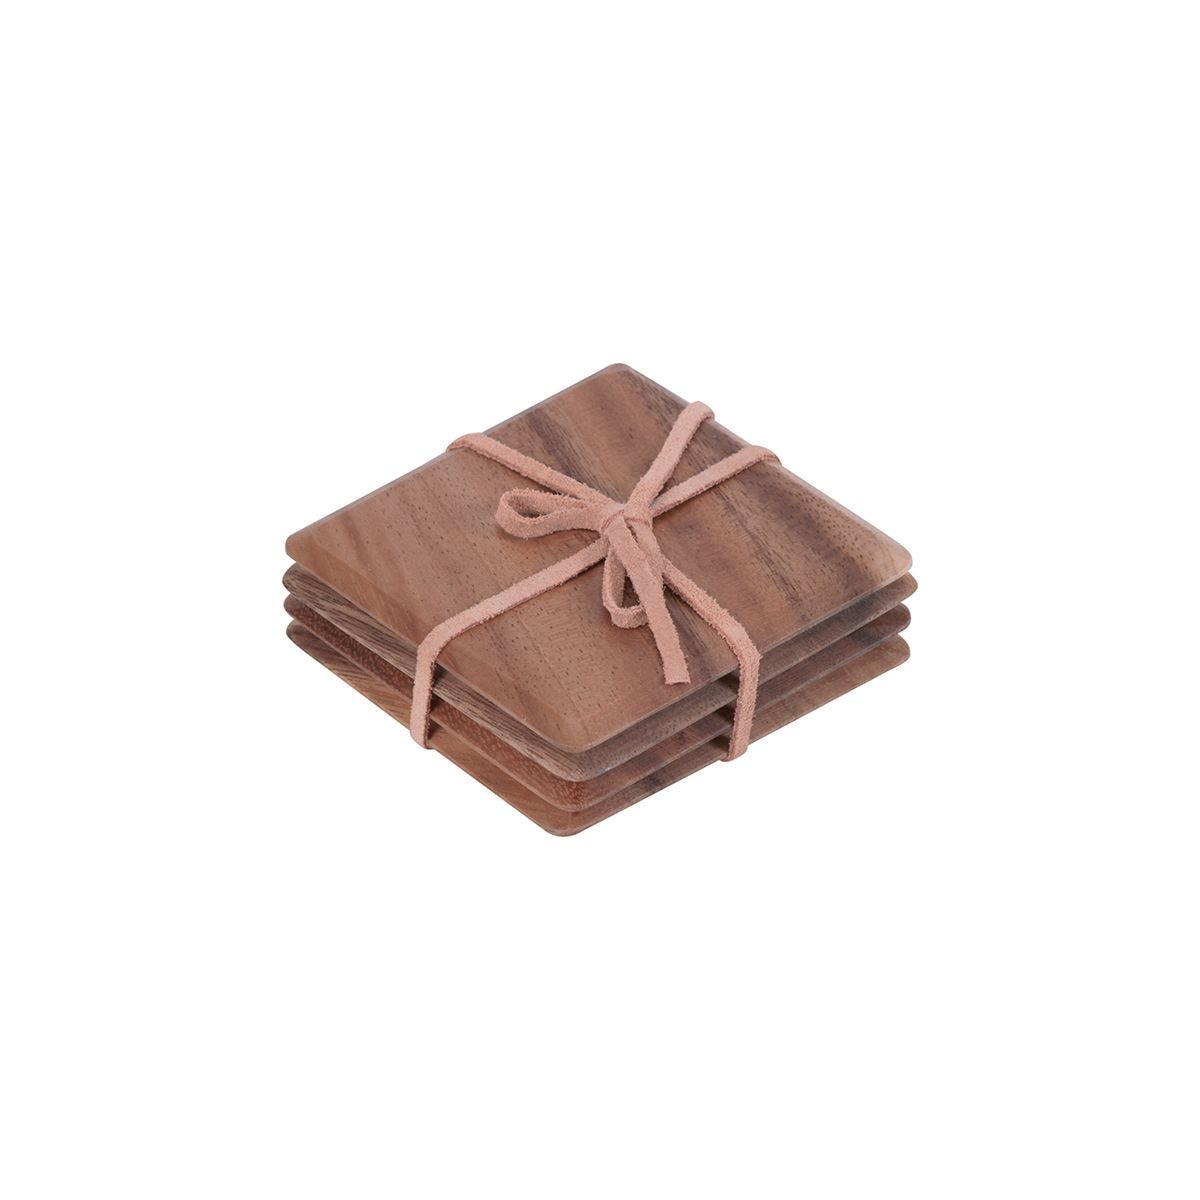 T&G Wooden Coasters - Set of 4